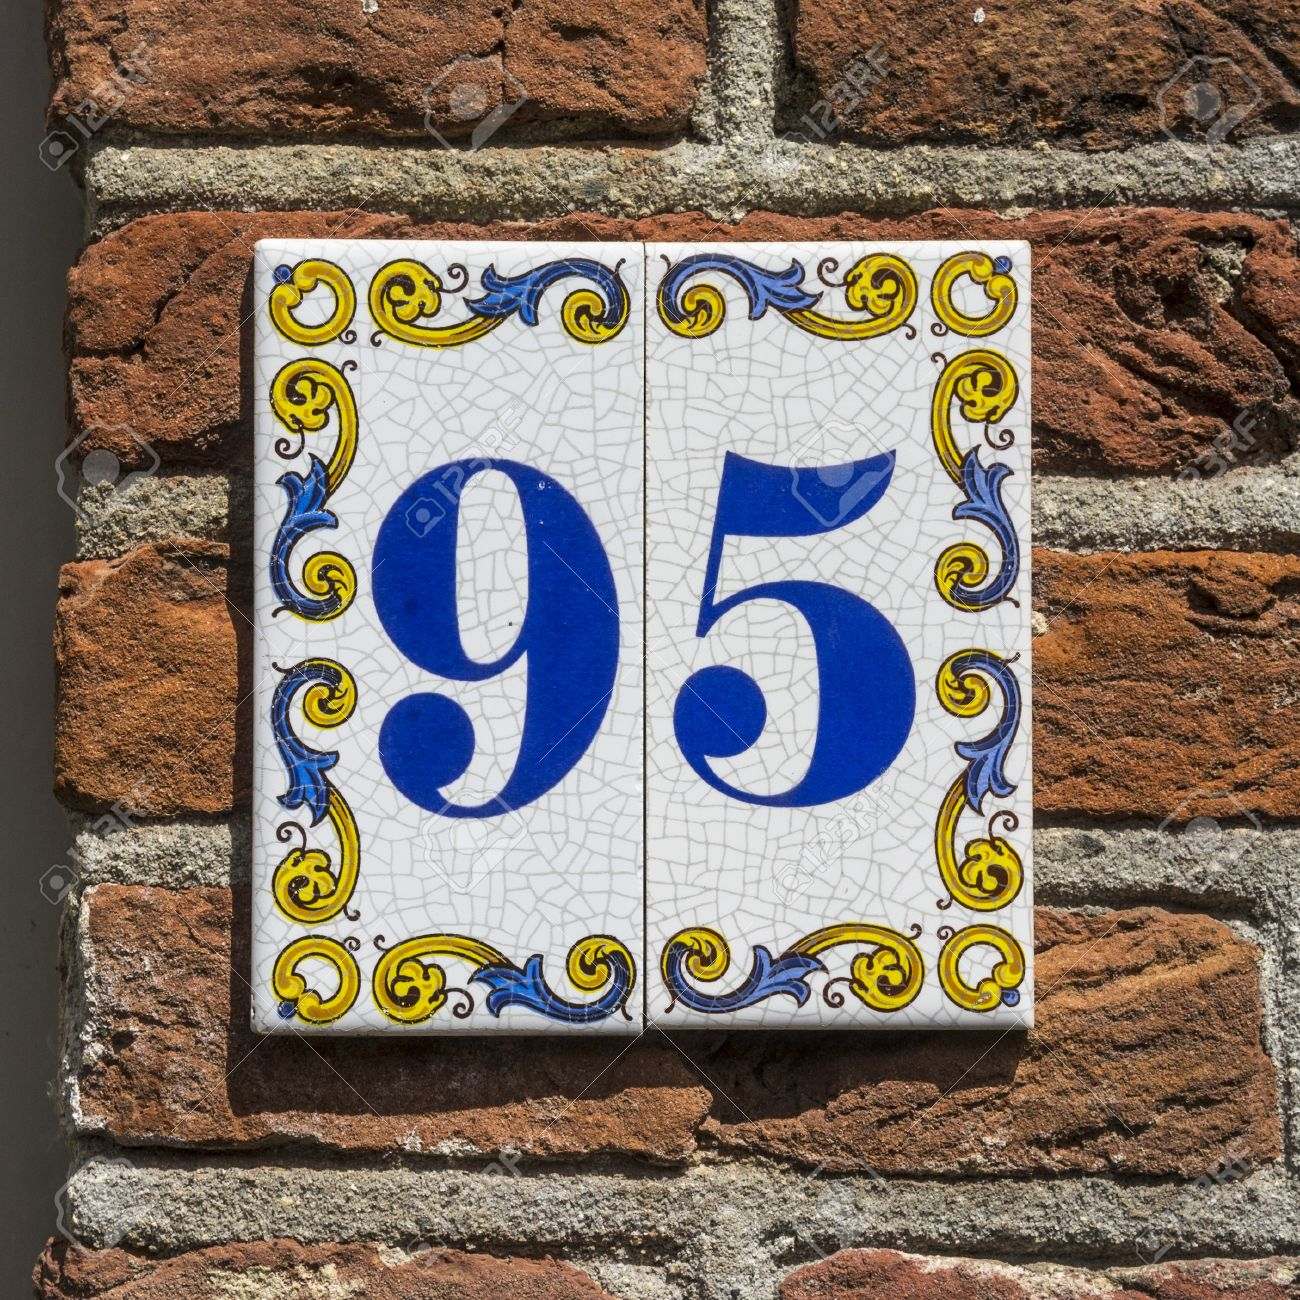 Ceramic house number tiles gallery tile flooring design ideas ceramic address tiles images tile flooring design ideas ceramic tile house numbers image collections tile flooring dailygadgetfo Images